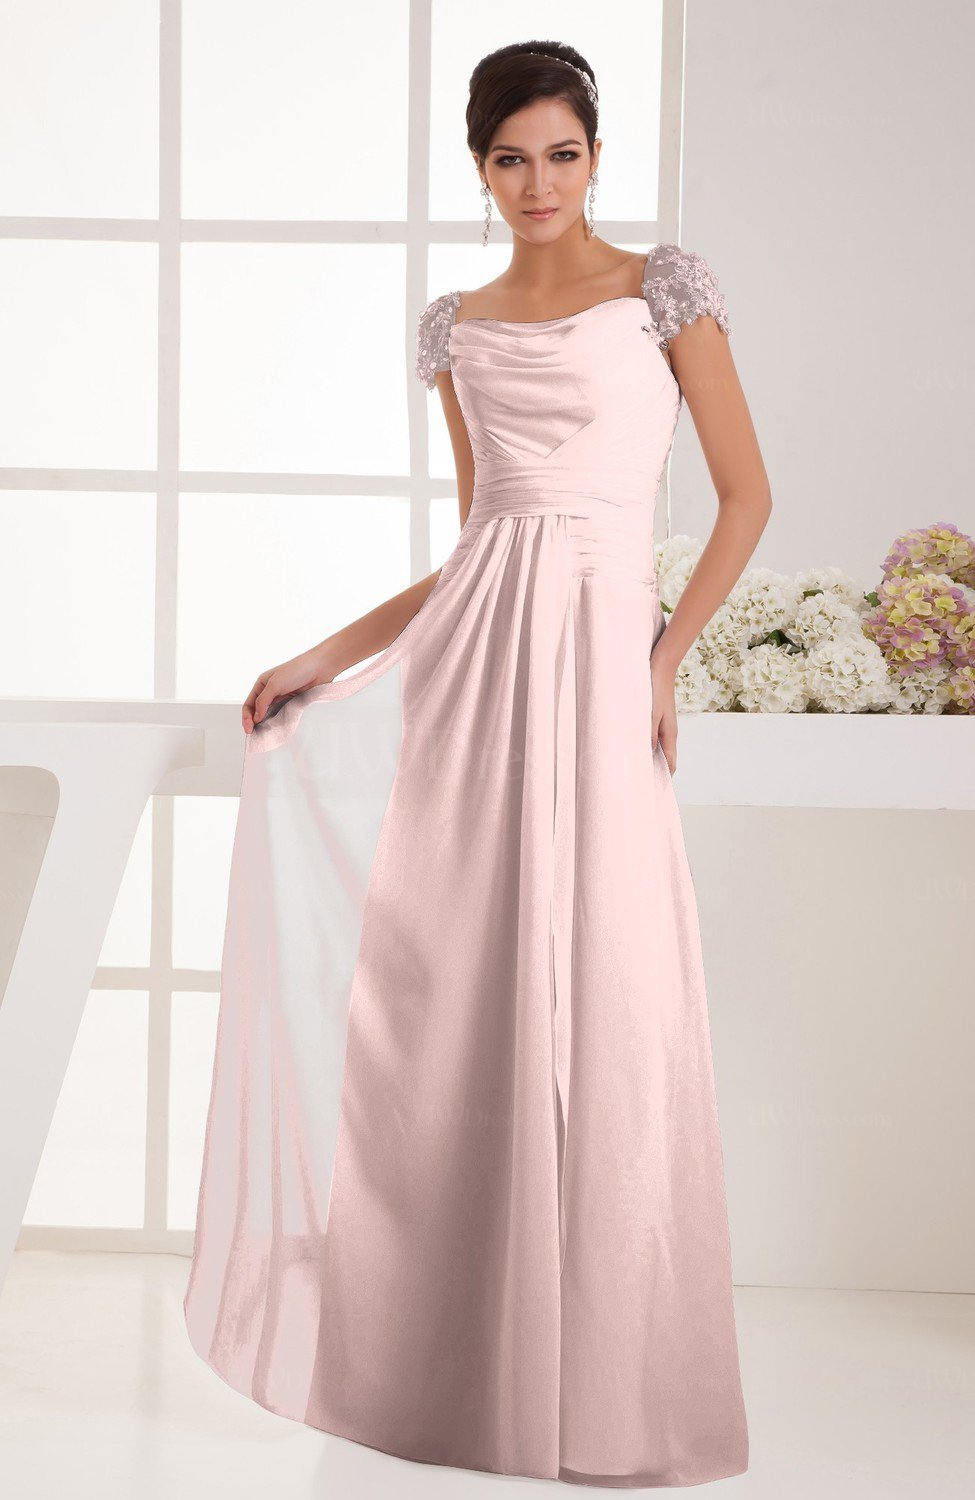 Pastel Pink Floor Length Dress